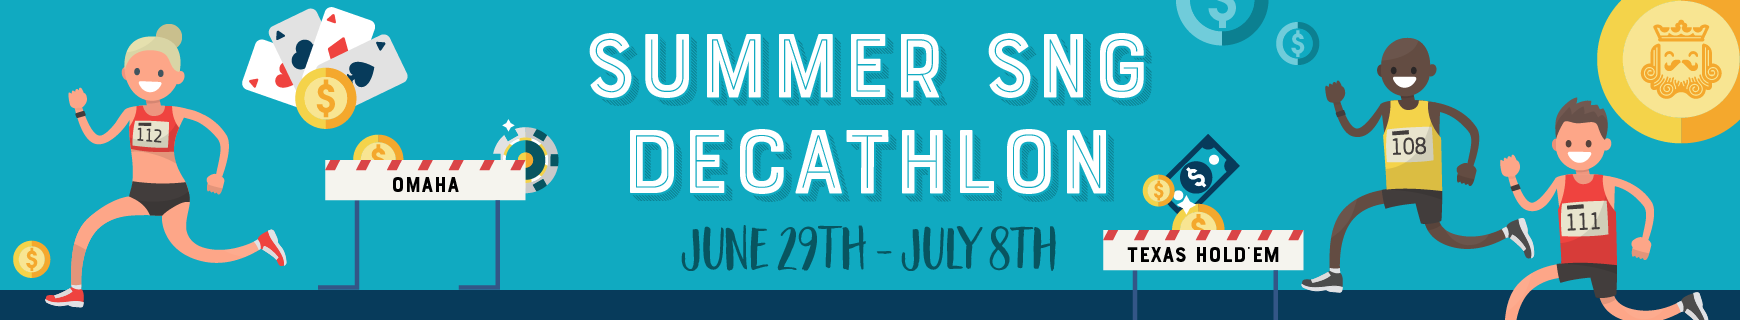 Summer sng decathlon %28870 x 160%29 2x